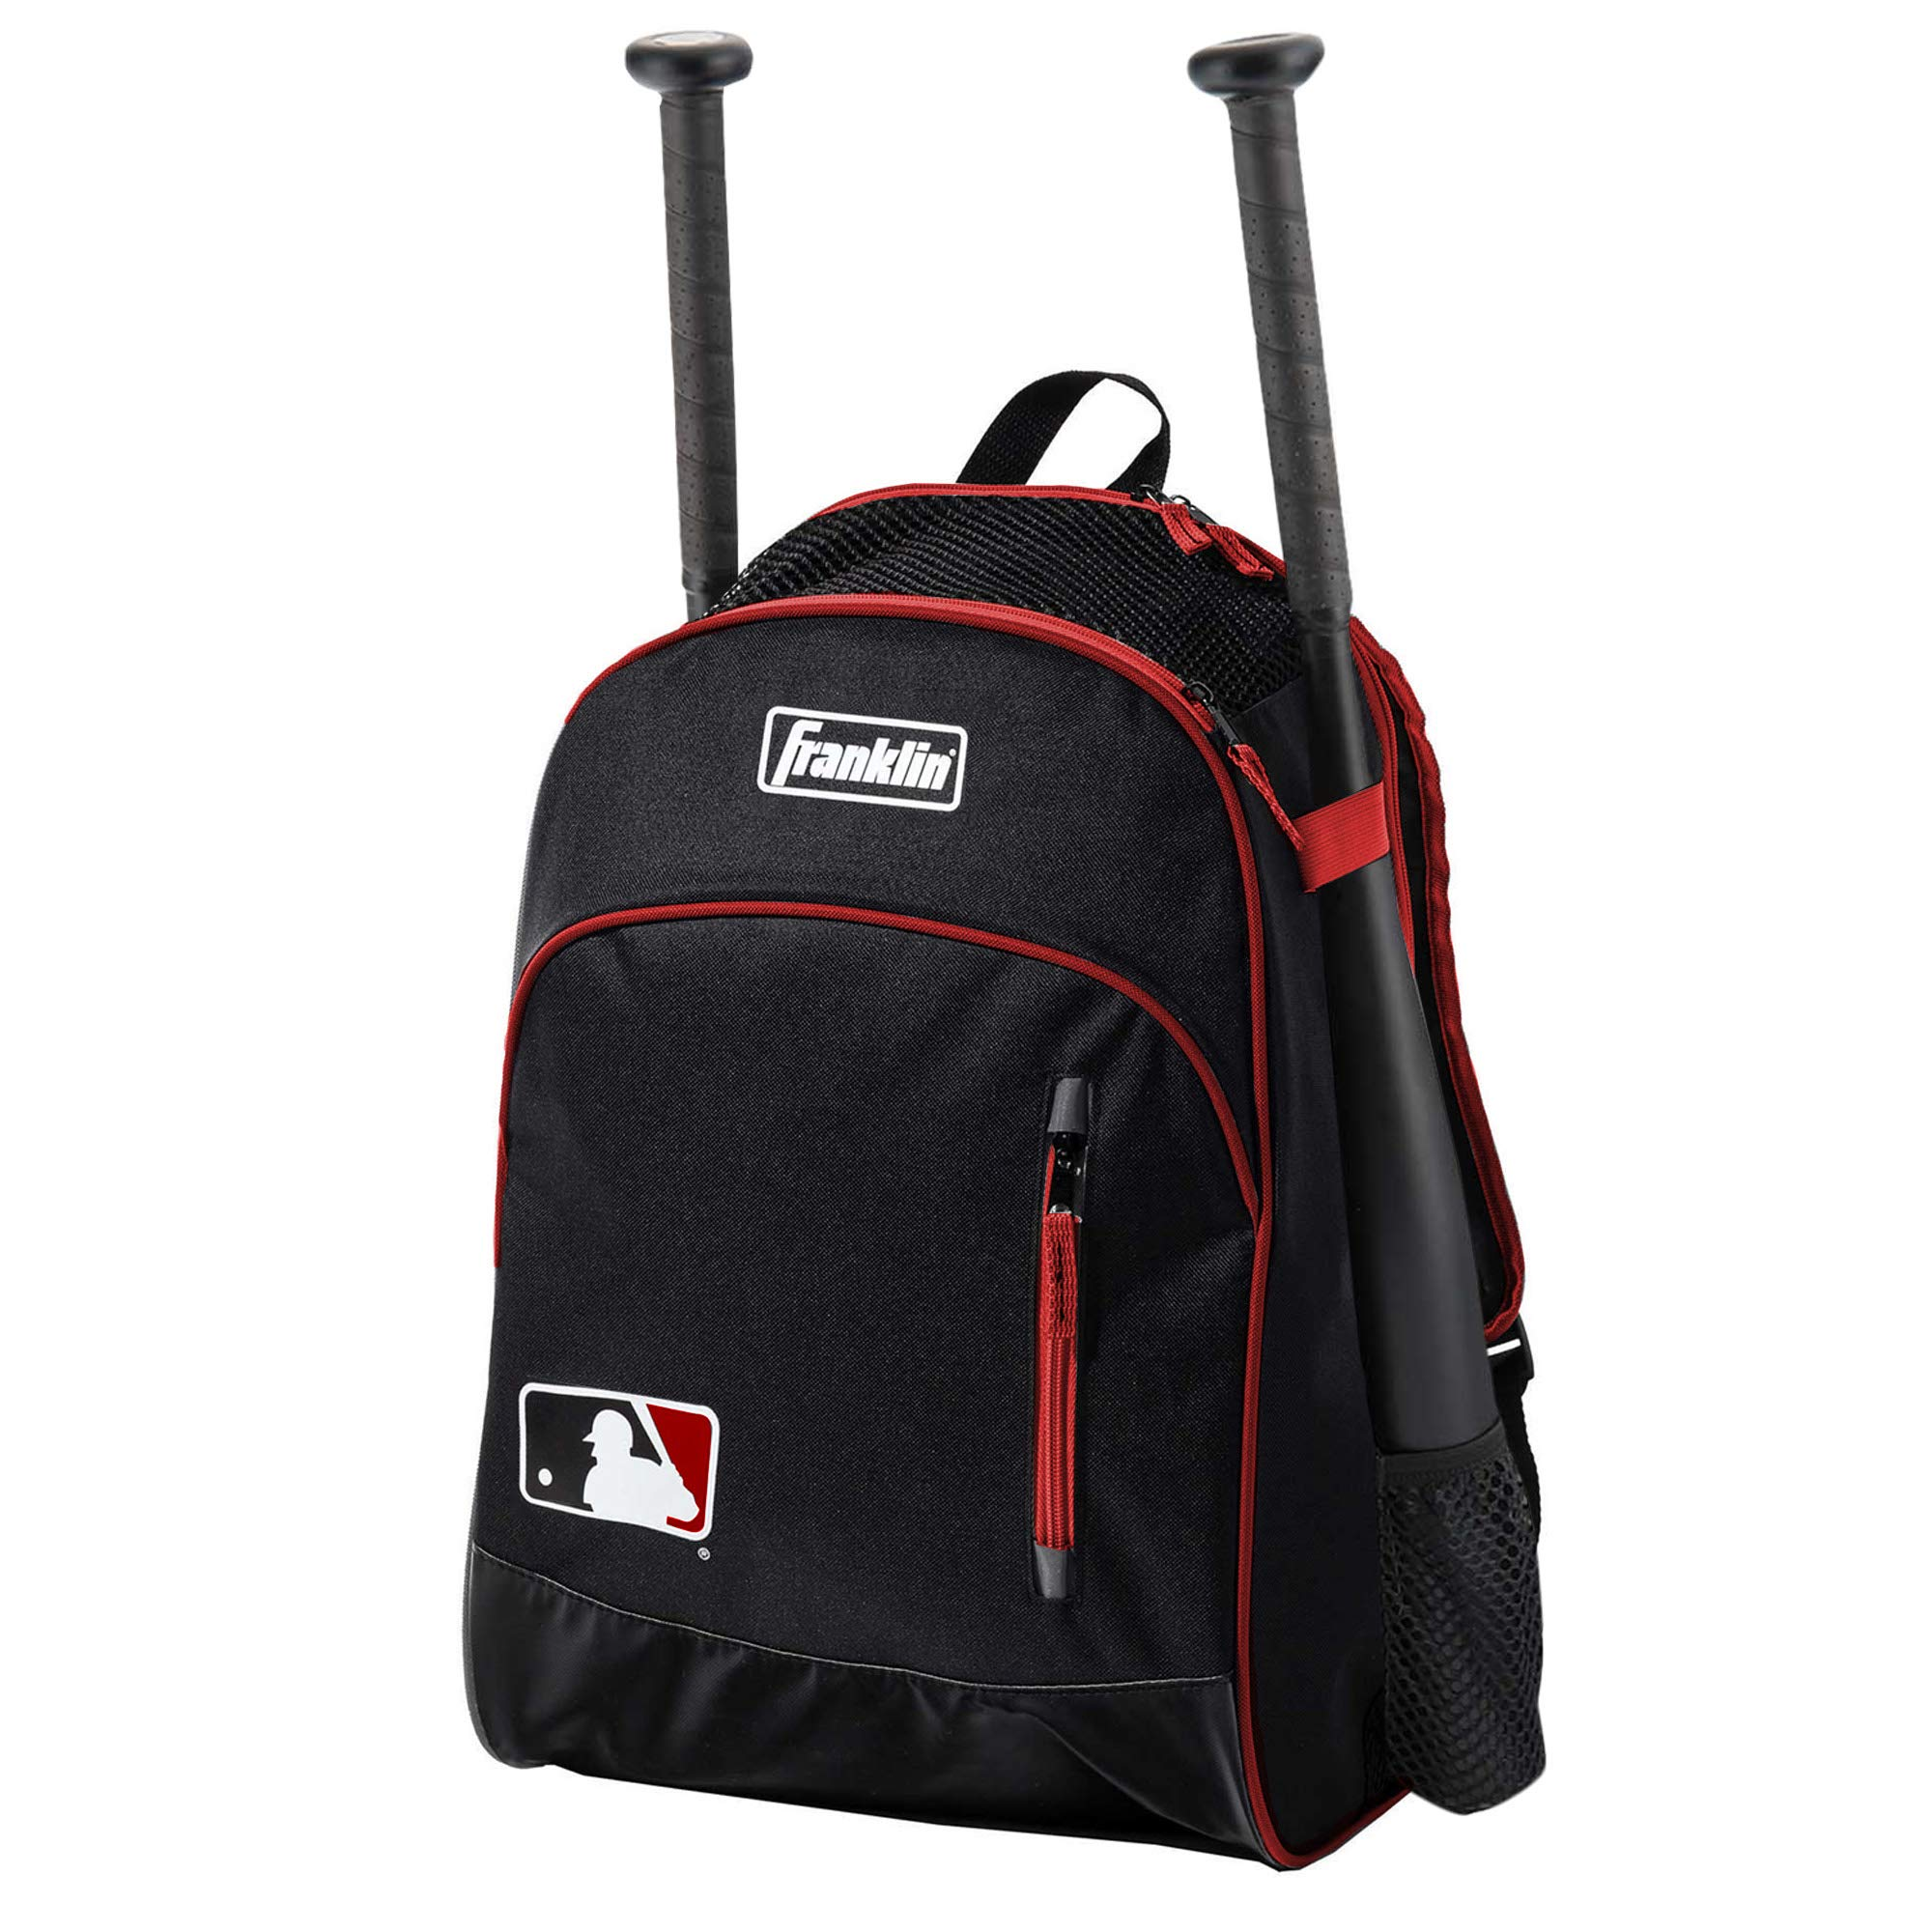 Franklin Sports MLB Batpack Bag - Youth Baseball, Softball and Teeball Bag - Equipment Bag For Sports - Bag Holds Bats (2) and Includes Fence Hook - Black/Red by Franklin Sports